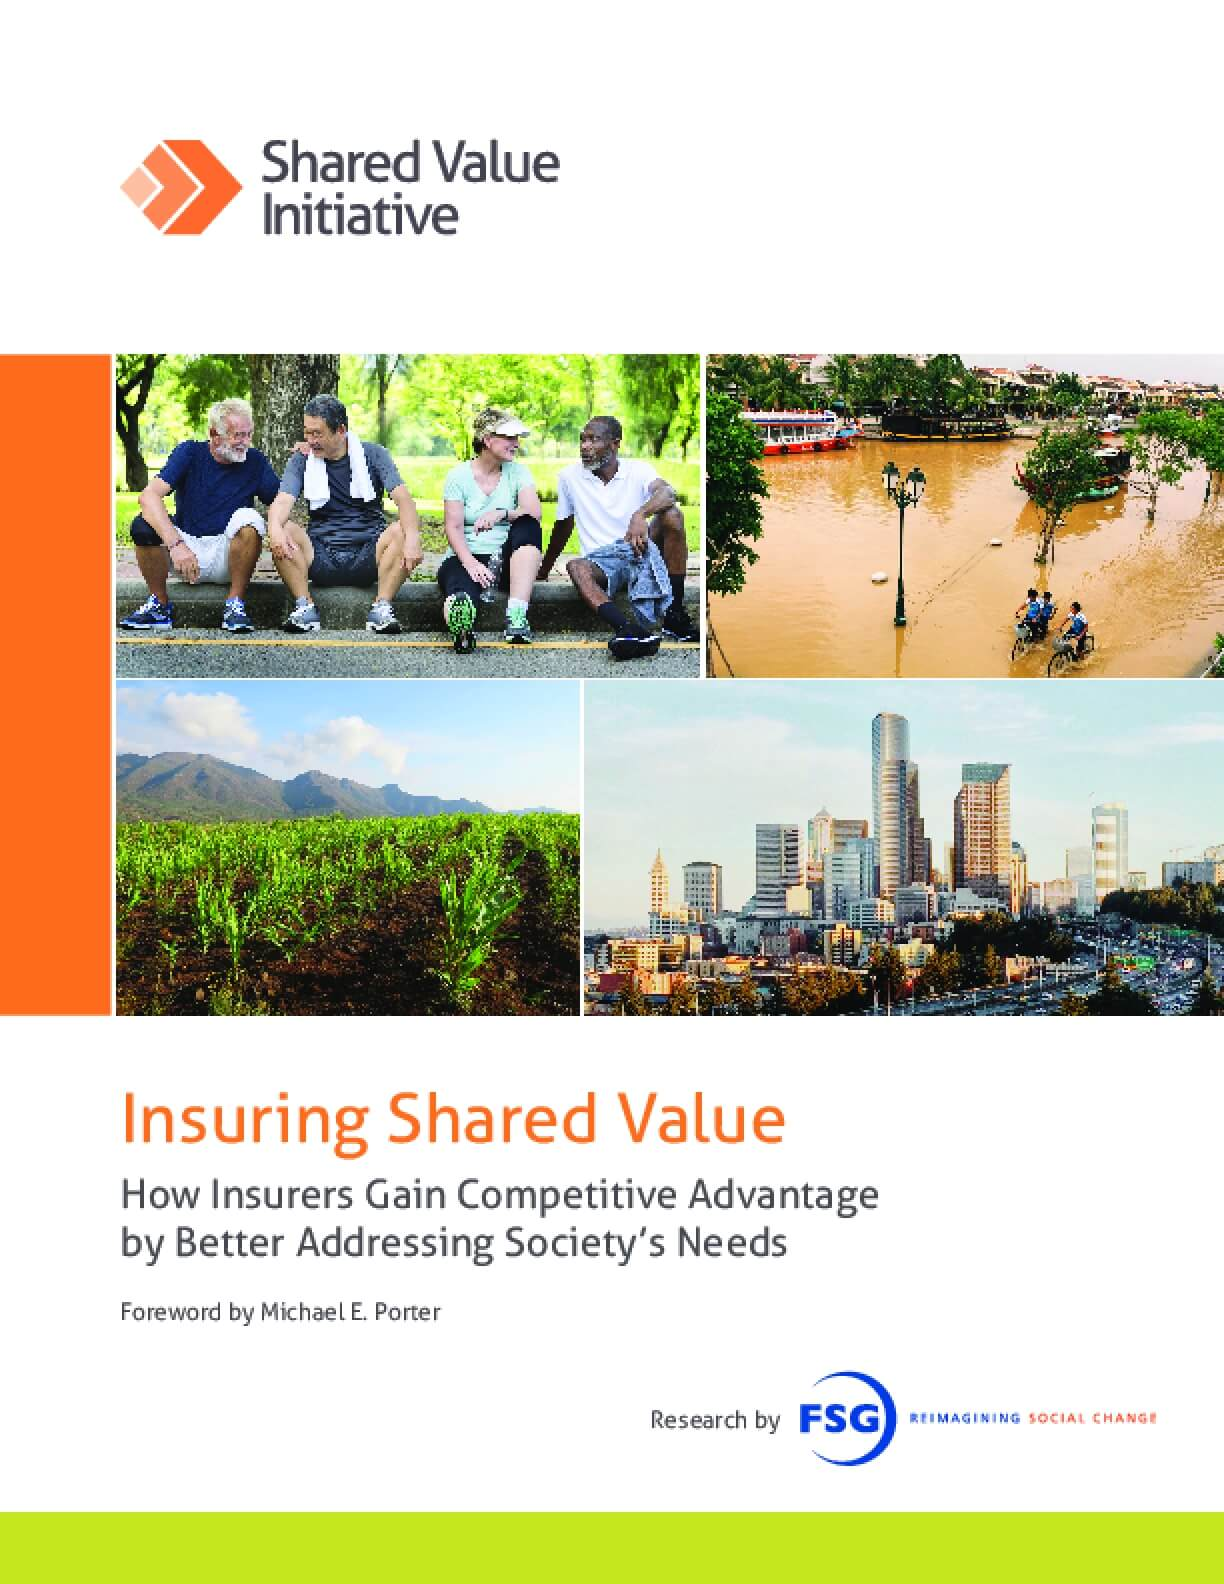 Insuring Shared Value: How Insurers Gain Competitive Advantage by Better Addressing Society's Needs